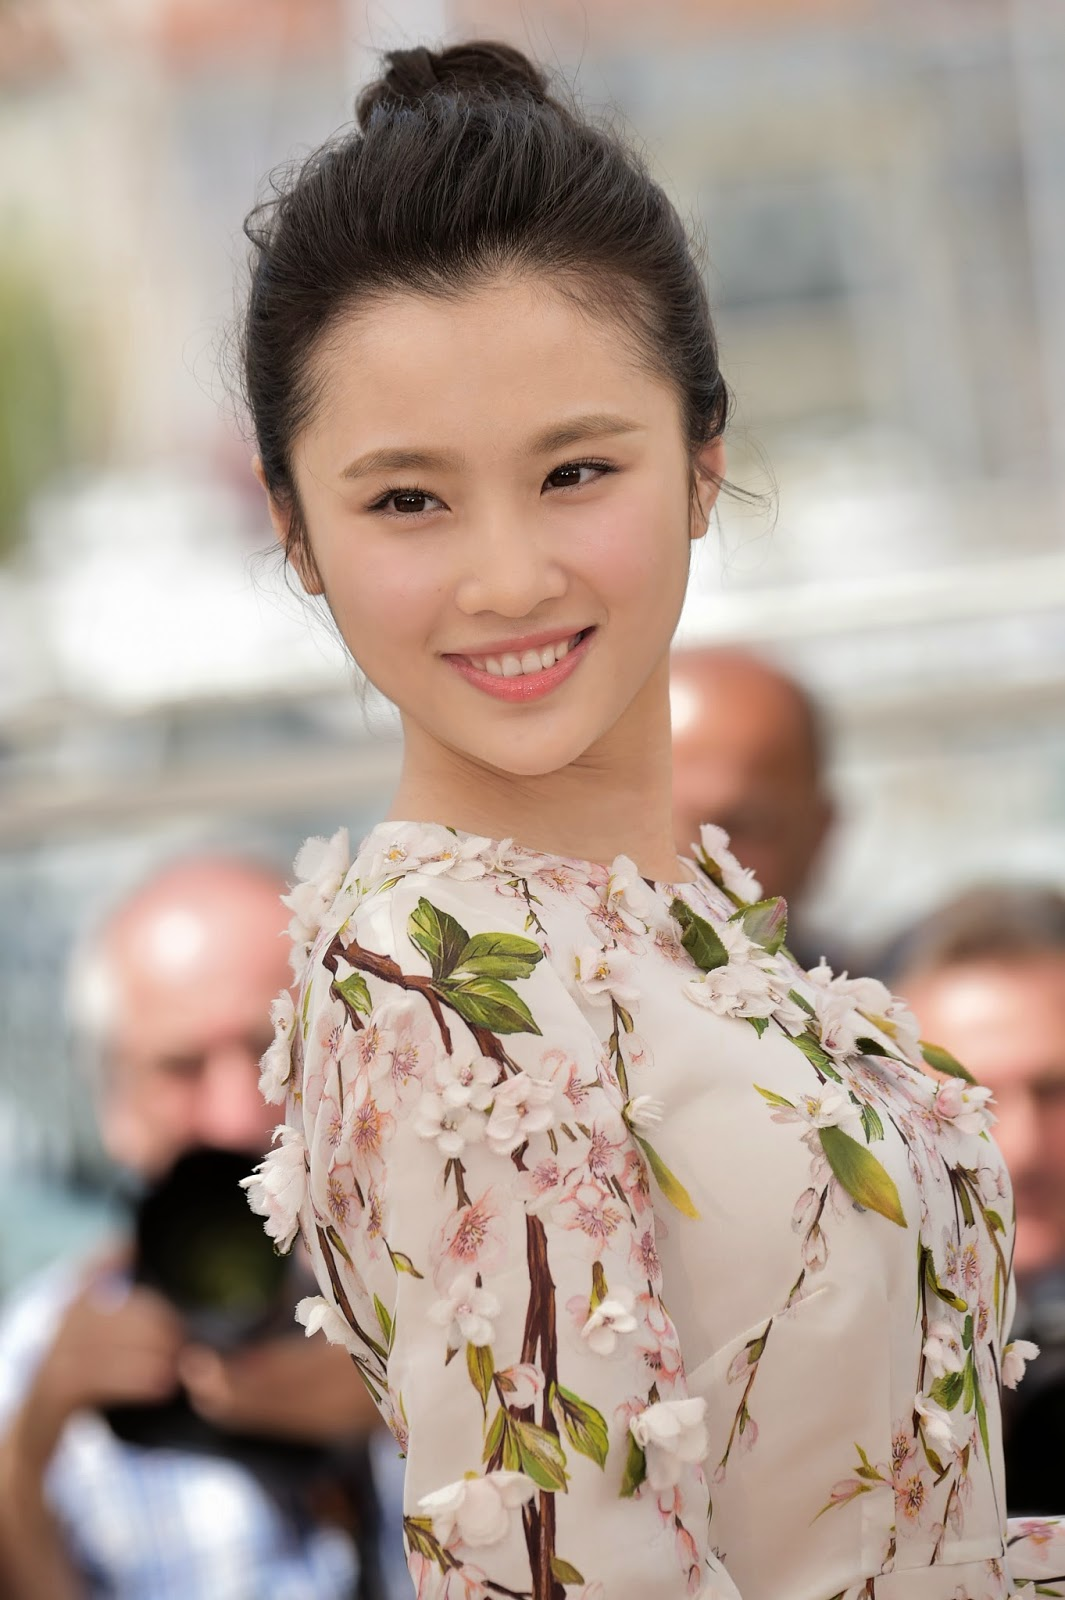 Coming Home-Gu Lai, Cannes, Cannes Festival, Cannes Film Festival, Chinese Actress, Entertainment, Film, Film Festival, France, Hollywood, Hollywood Actress, Showbiz, Zhang Huiwen, Zhang Huiwen Photo,